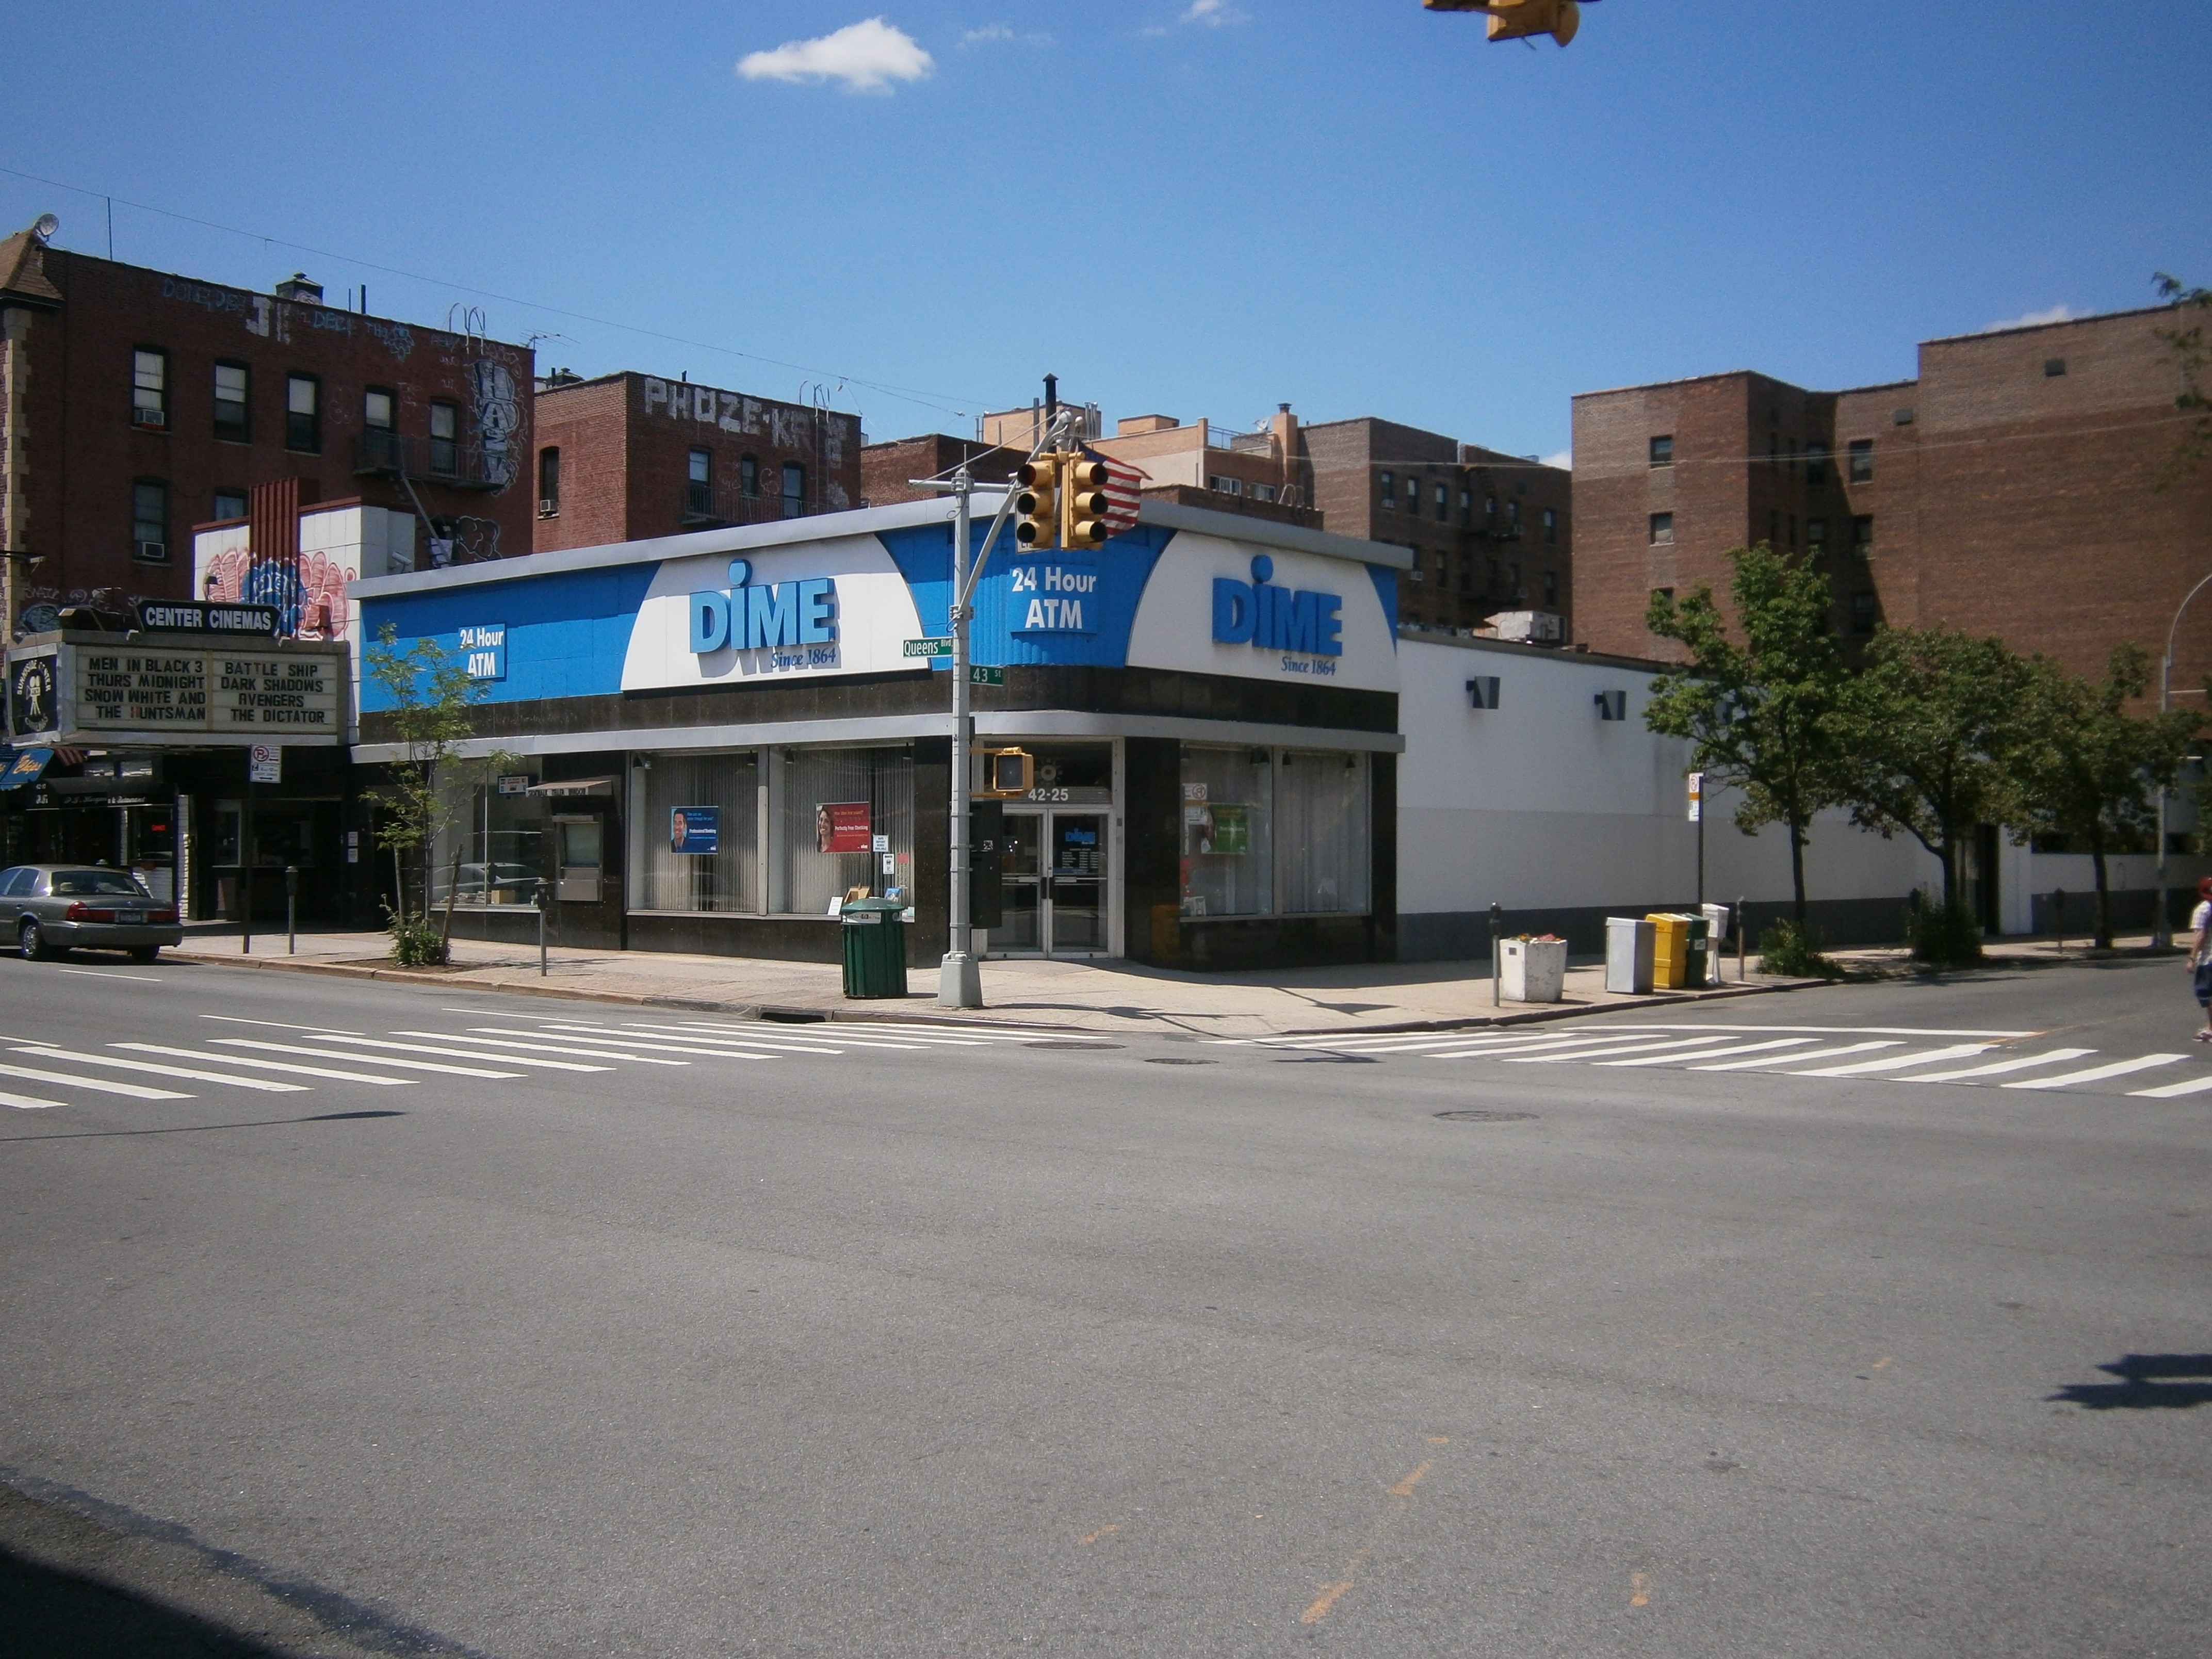 Commercial Property for Sale with Development Potential on Queens Boulevard